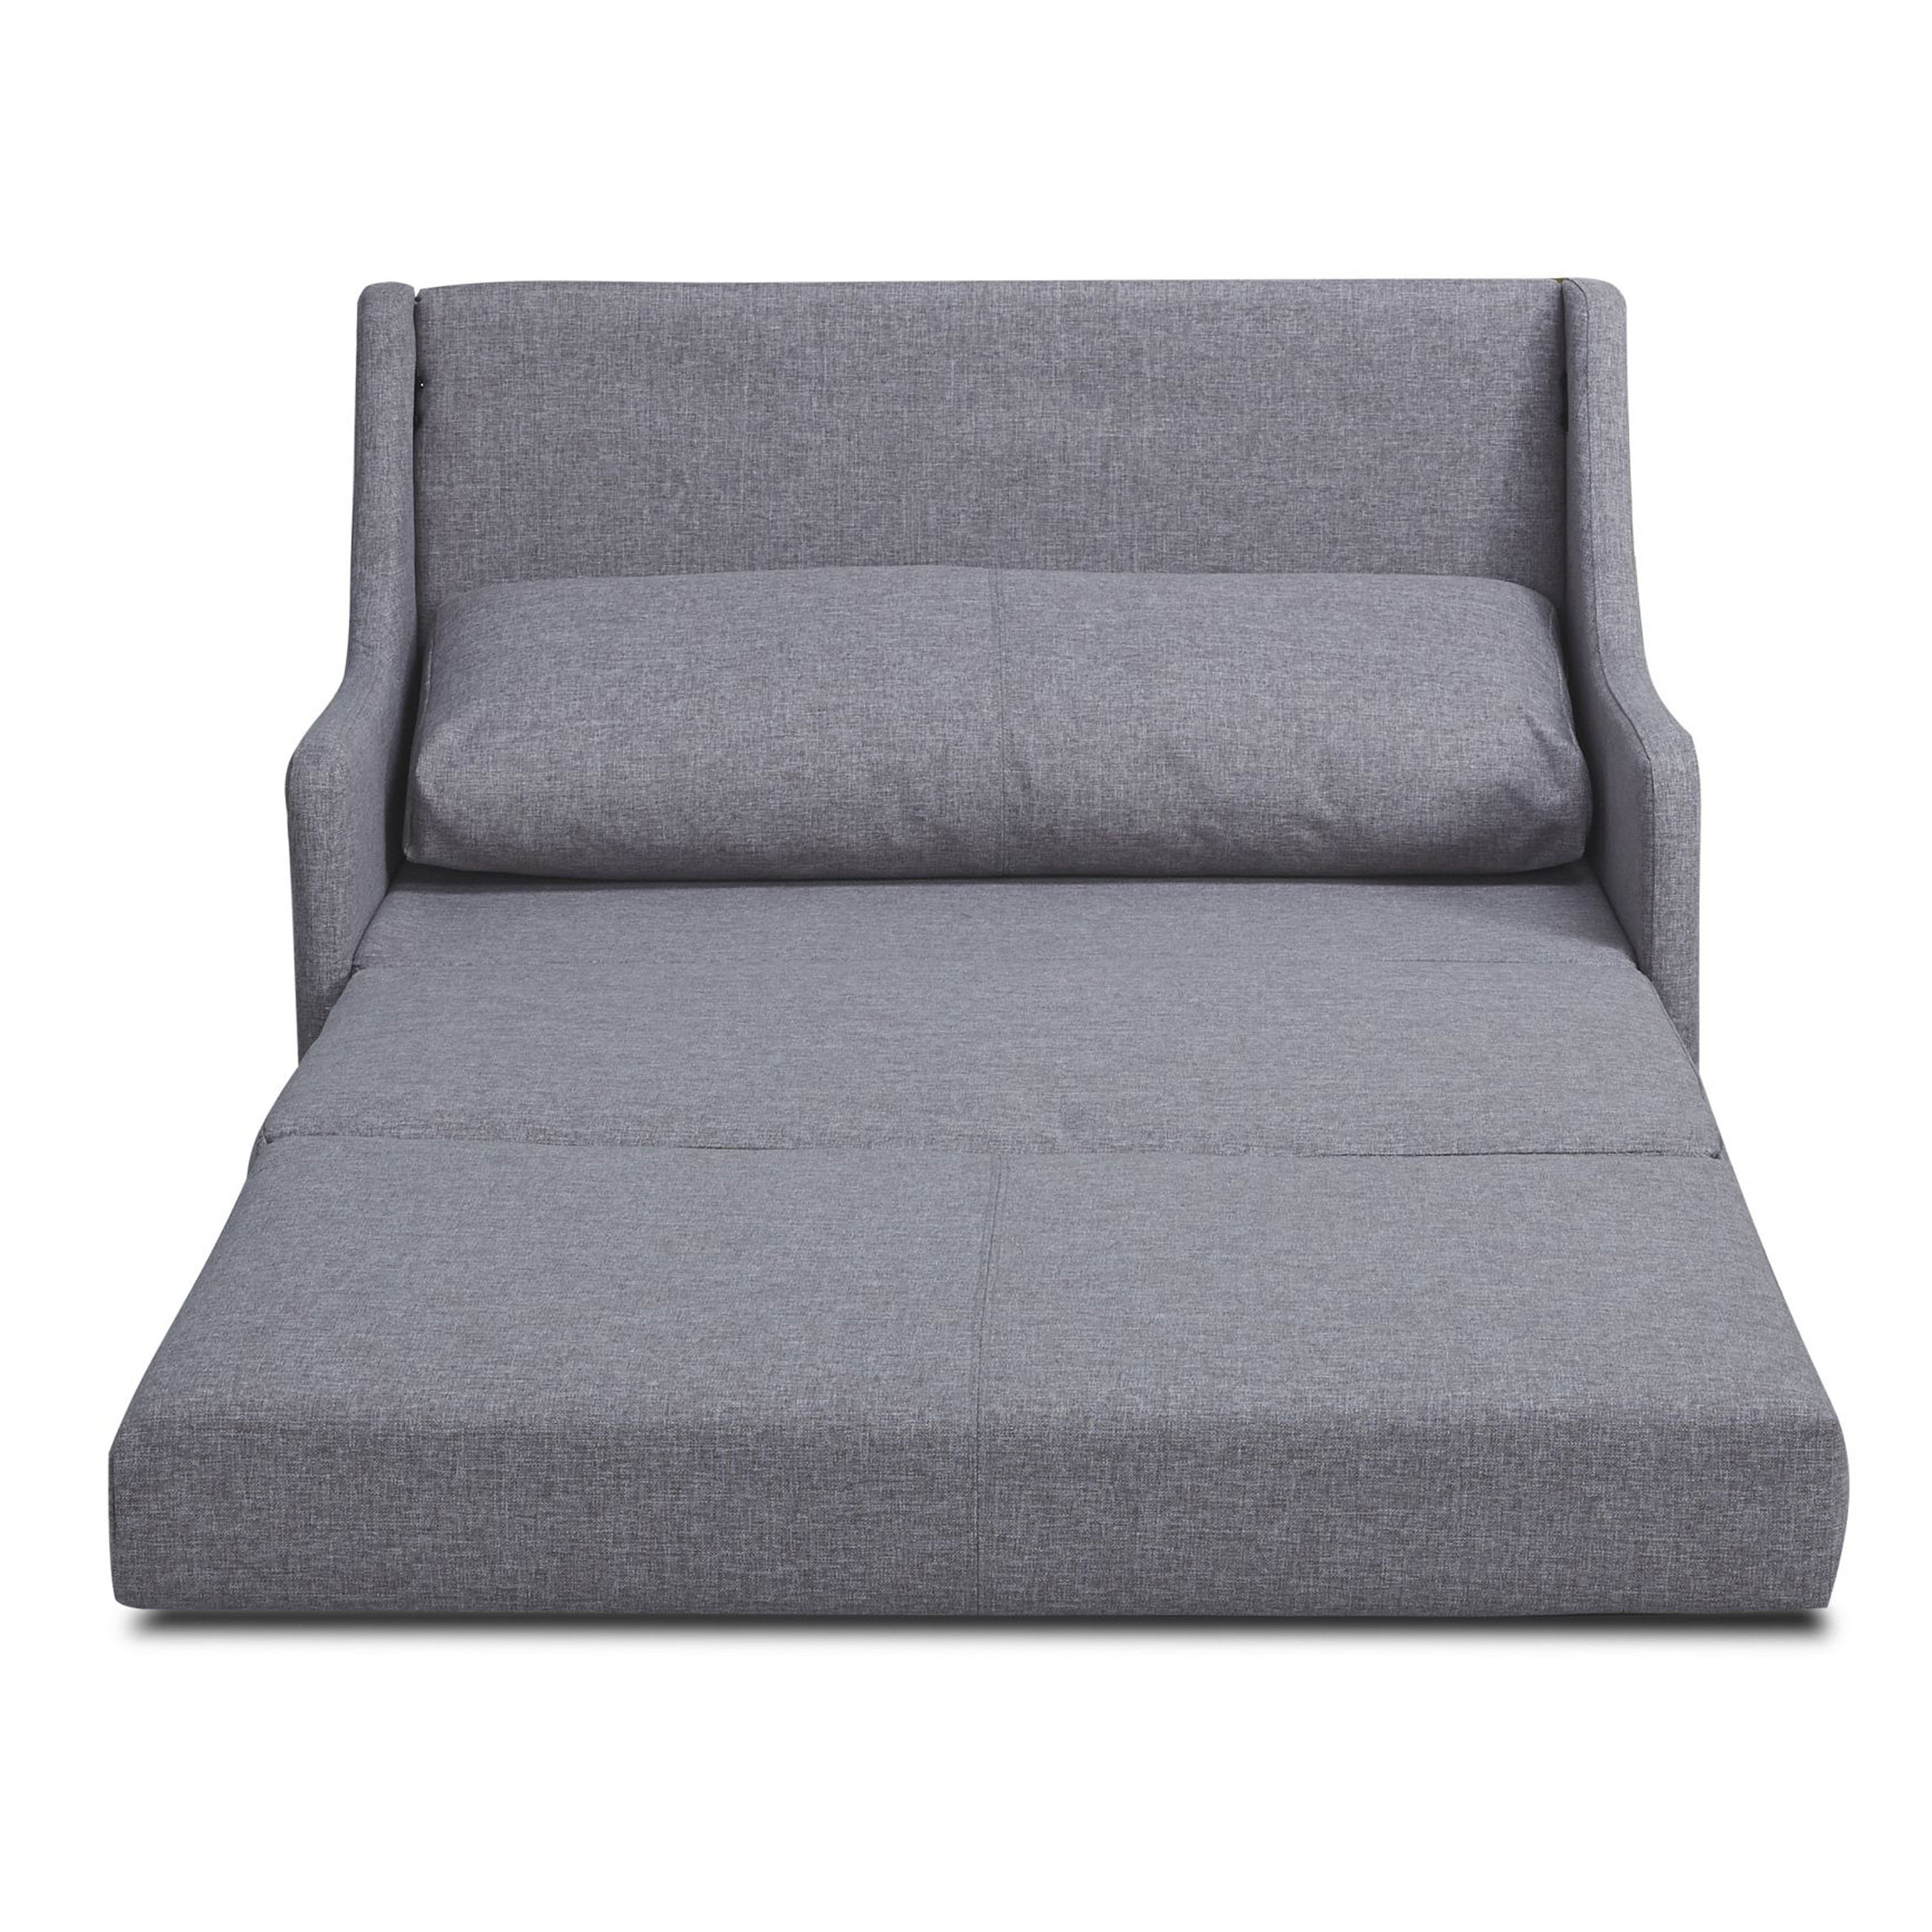 Loveseat Sleepers | Loveseat Sleeper | Loveseat Sleeper Bed